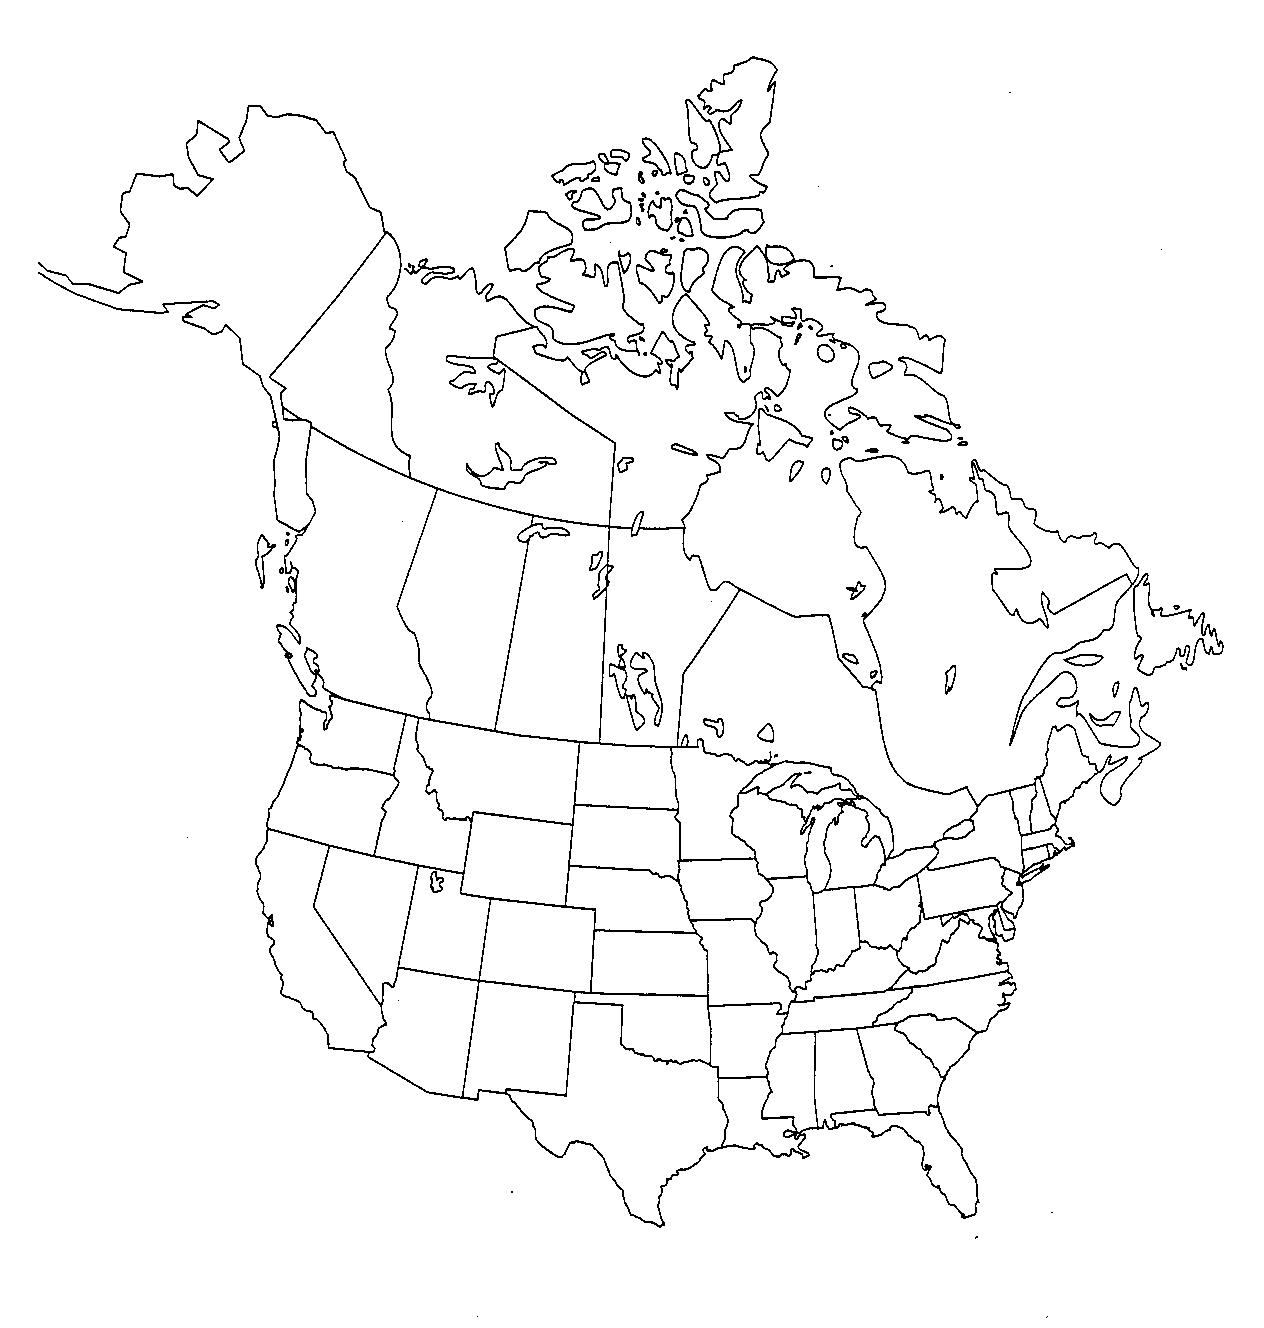 US And Canada Printable Blank Maps Royalty Free Clip Art Abcteach - Map of us states and canada